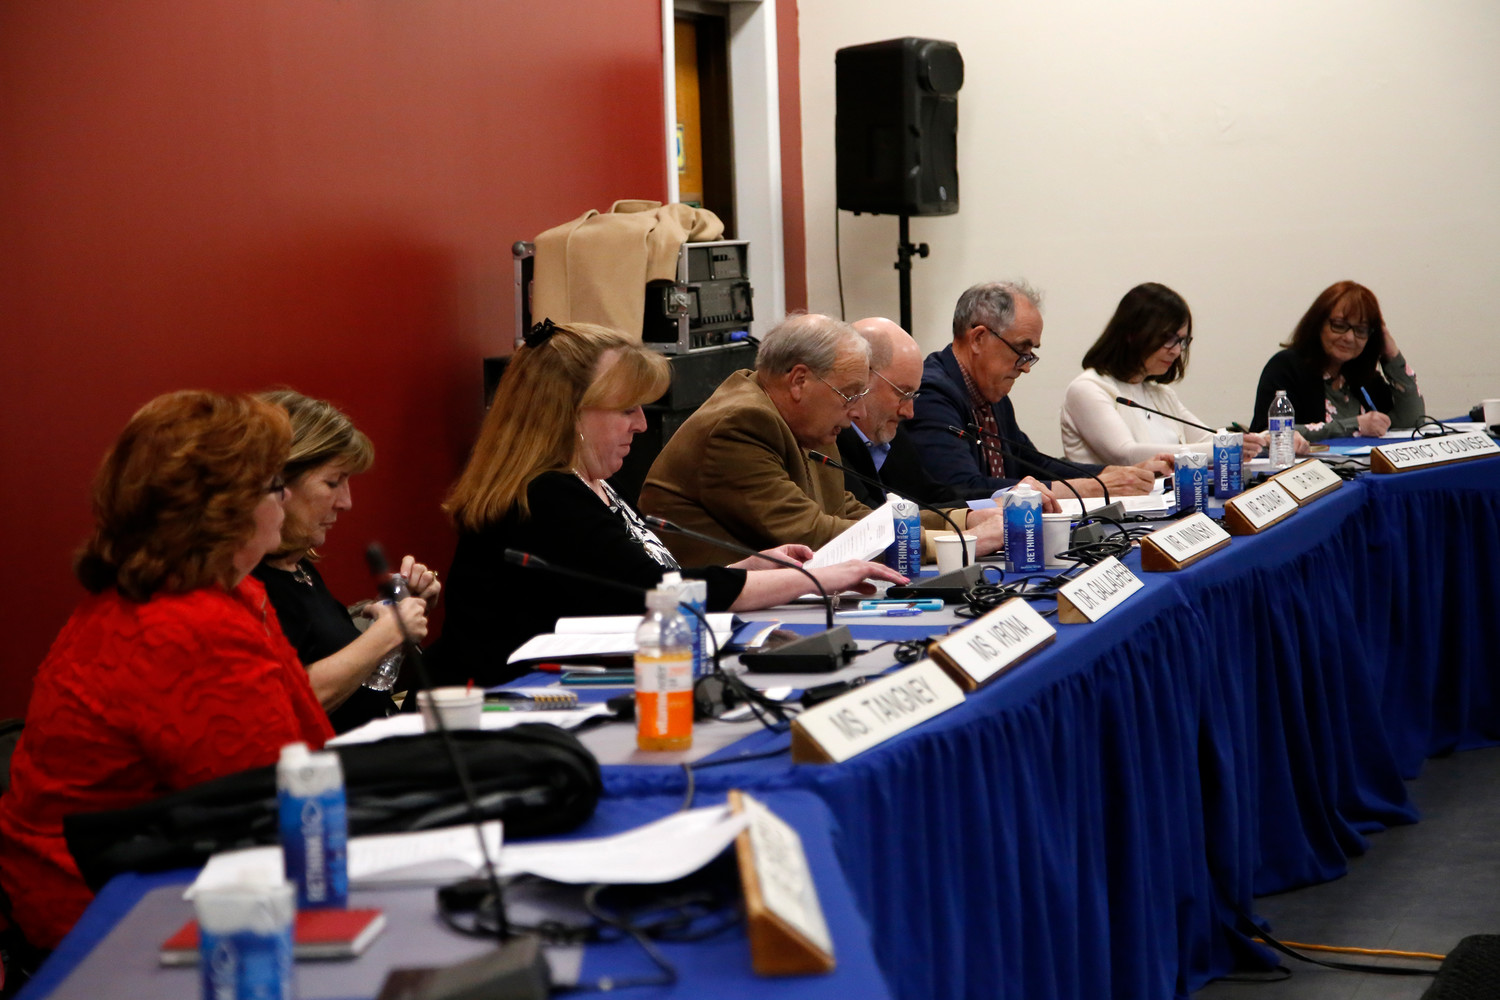 The Long Beach school board adopted next year's budget of about $140 million on April 12.